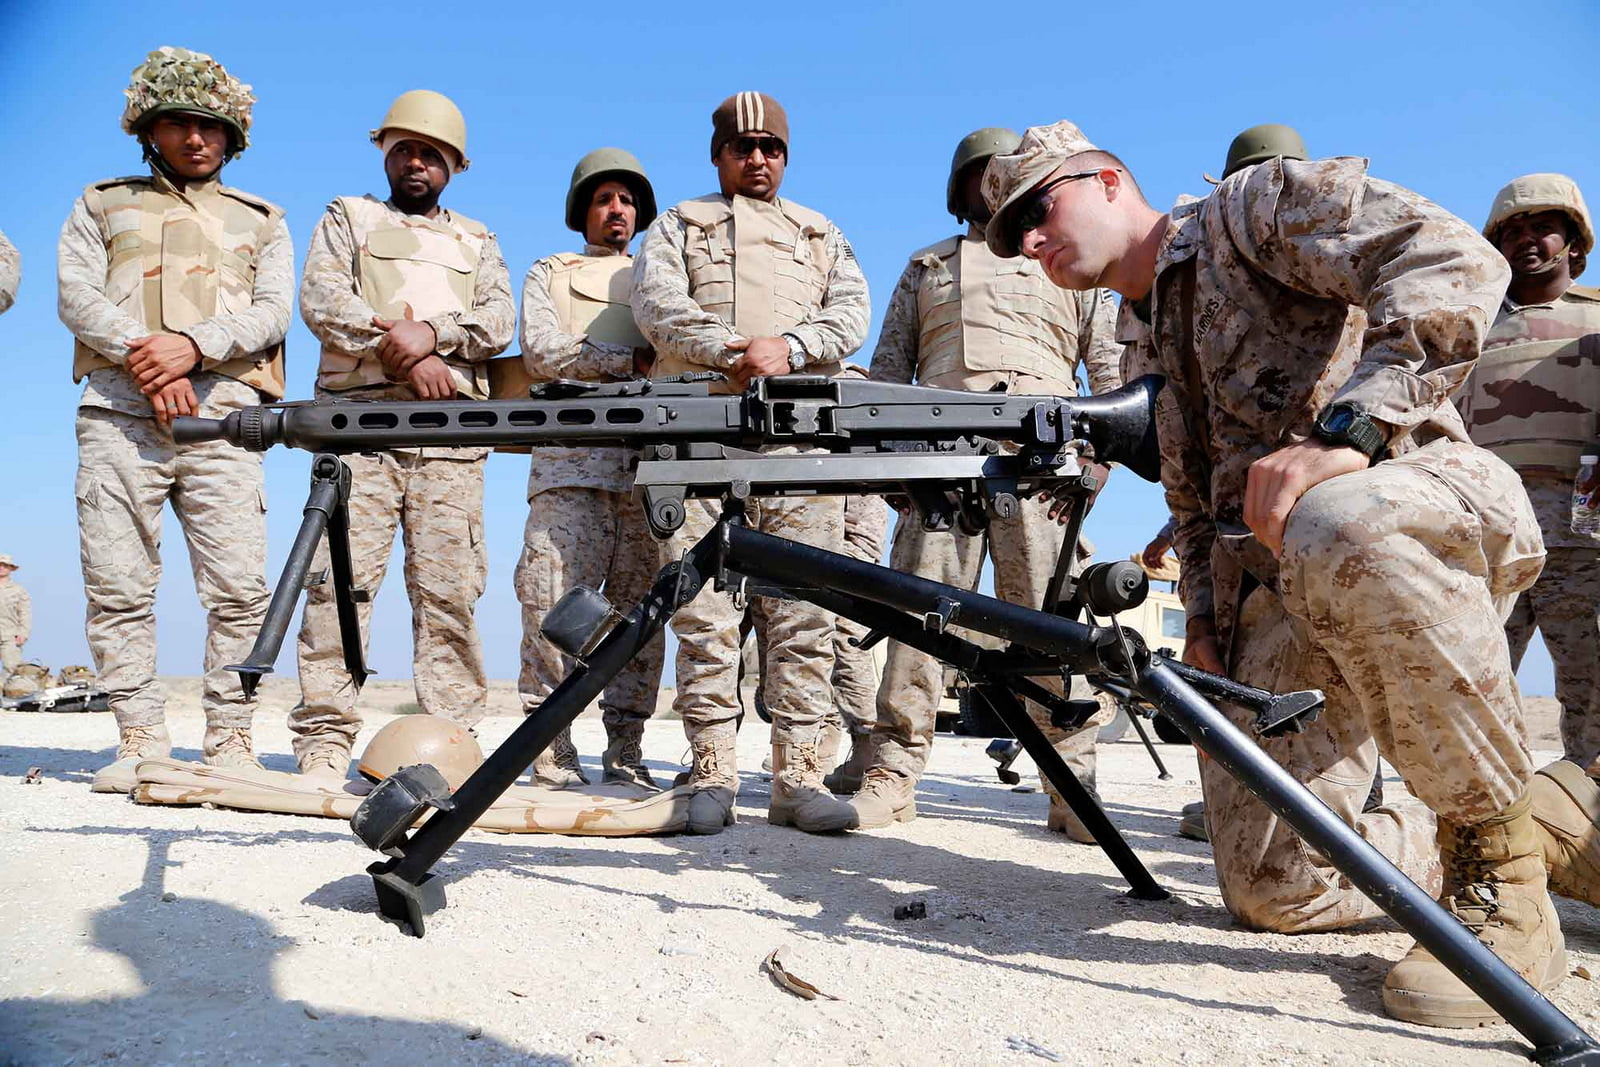 A U.S. Marine teaches Saudi Naval Forces how to use a MG-42 machine gun during exercise Red Reef 15. Rome M. Lazarus | US Marine Corp